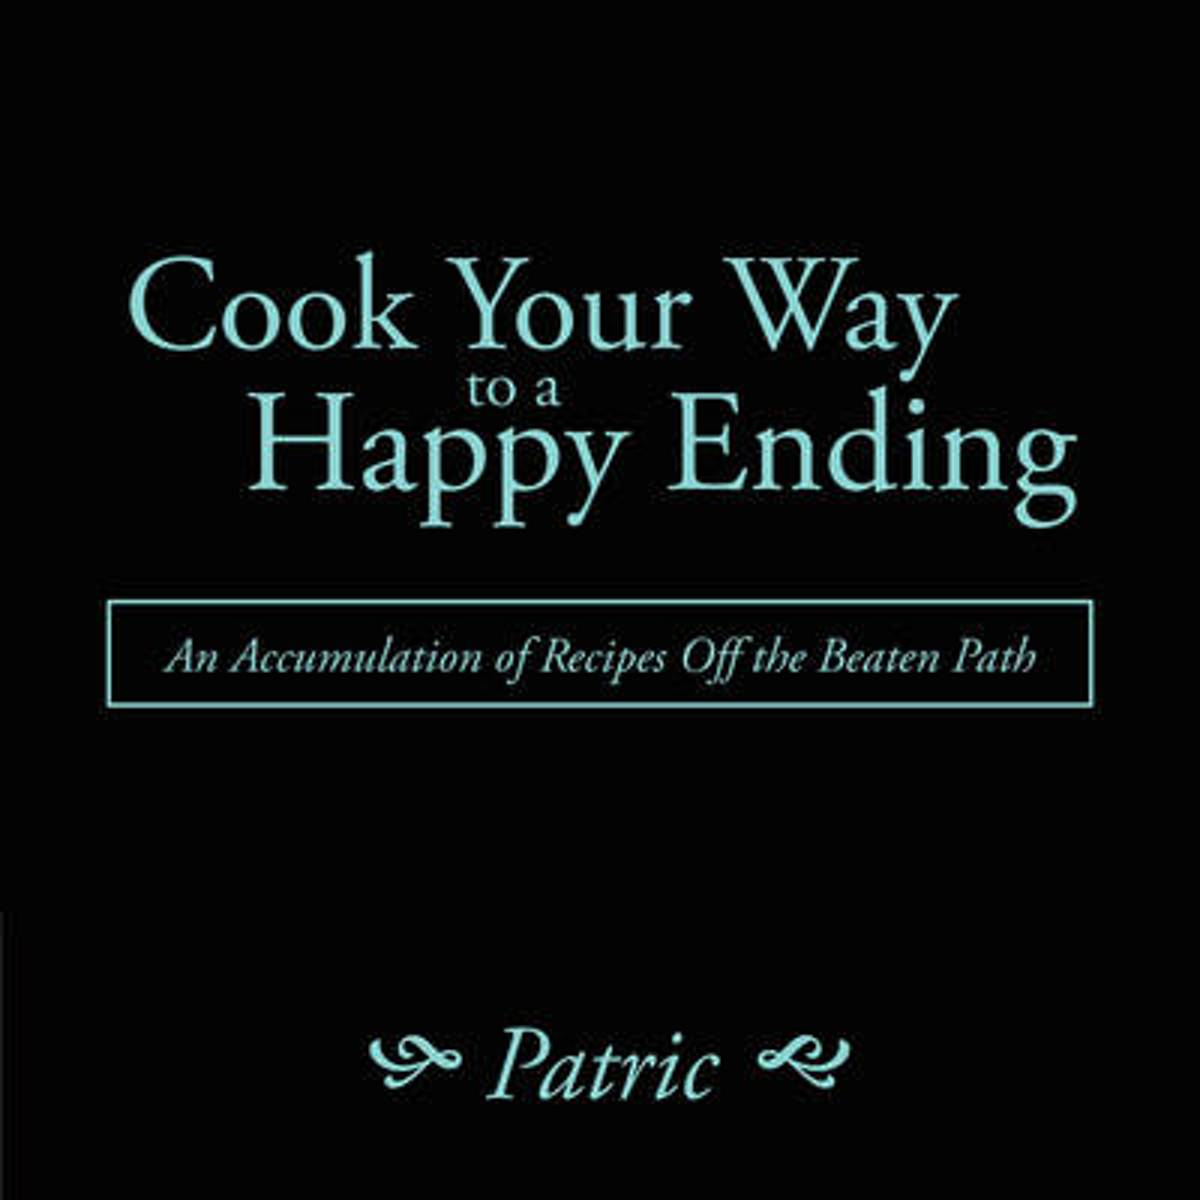 Cook Your Way to a Happy Ending